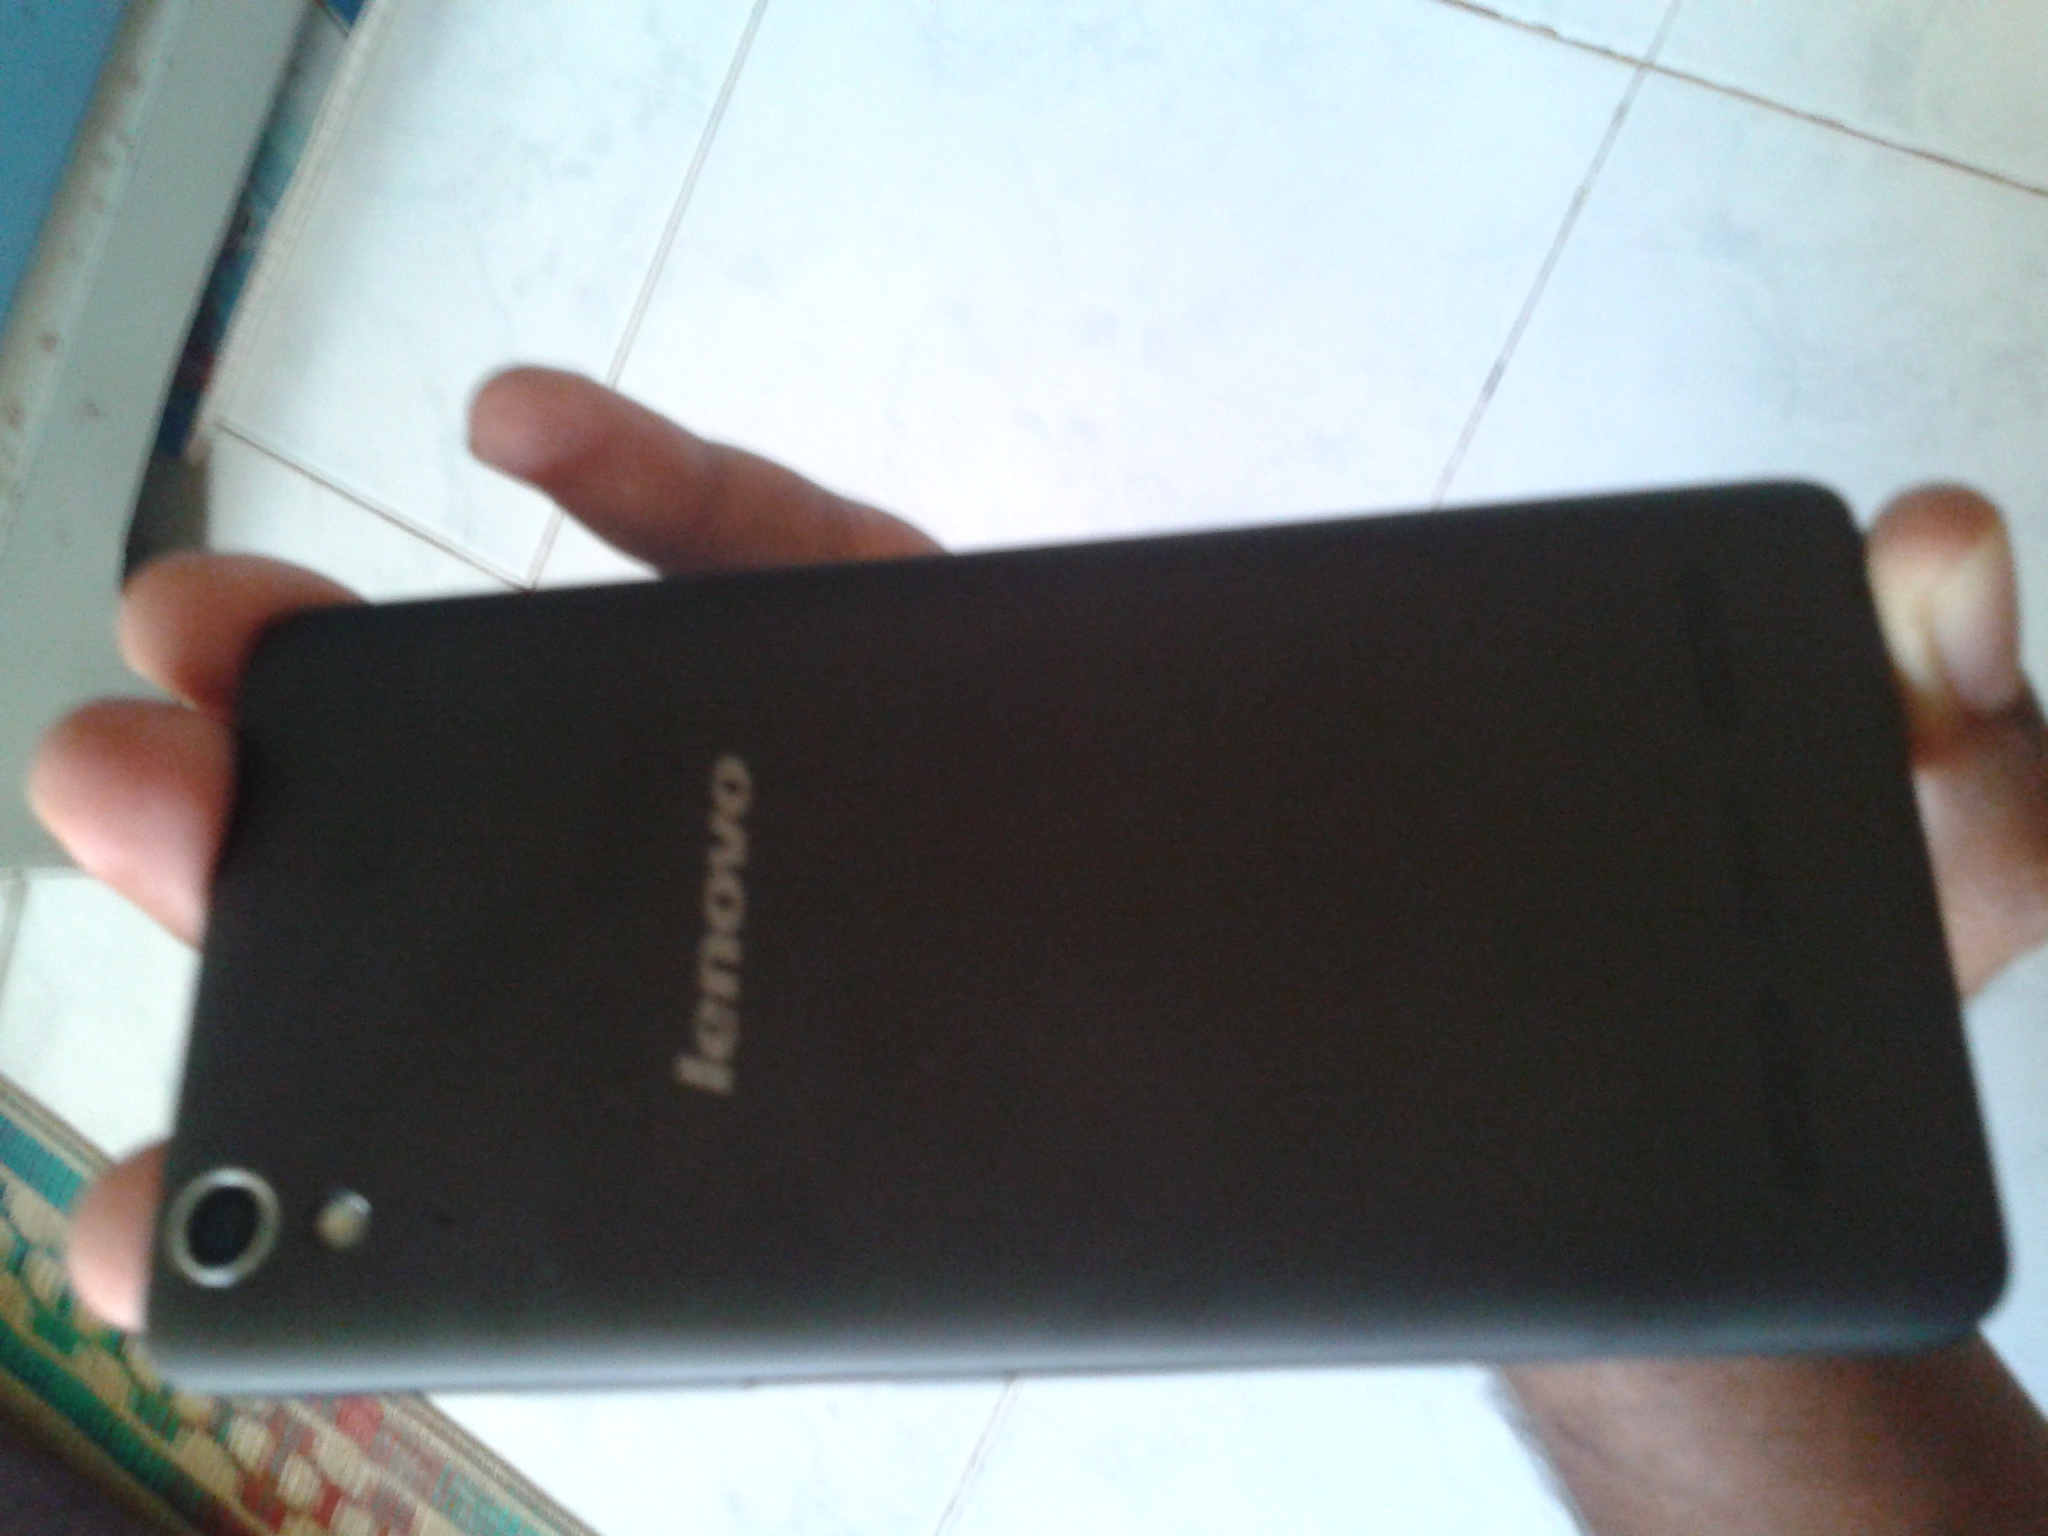 Lenovo A6000 Smartphone With Dual Speakers Pros And Cons